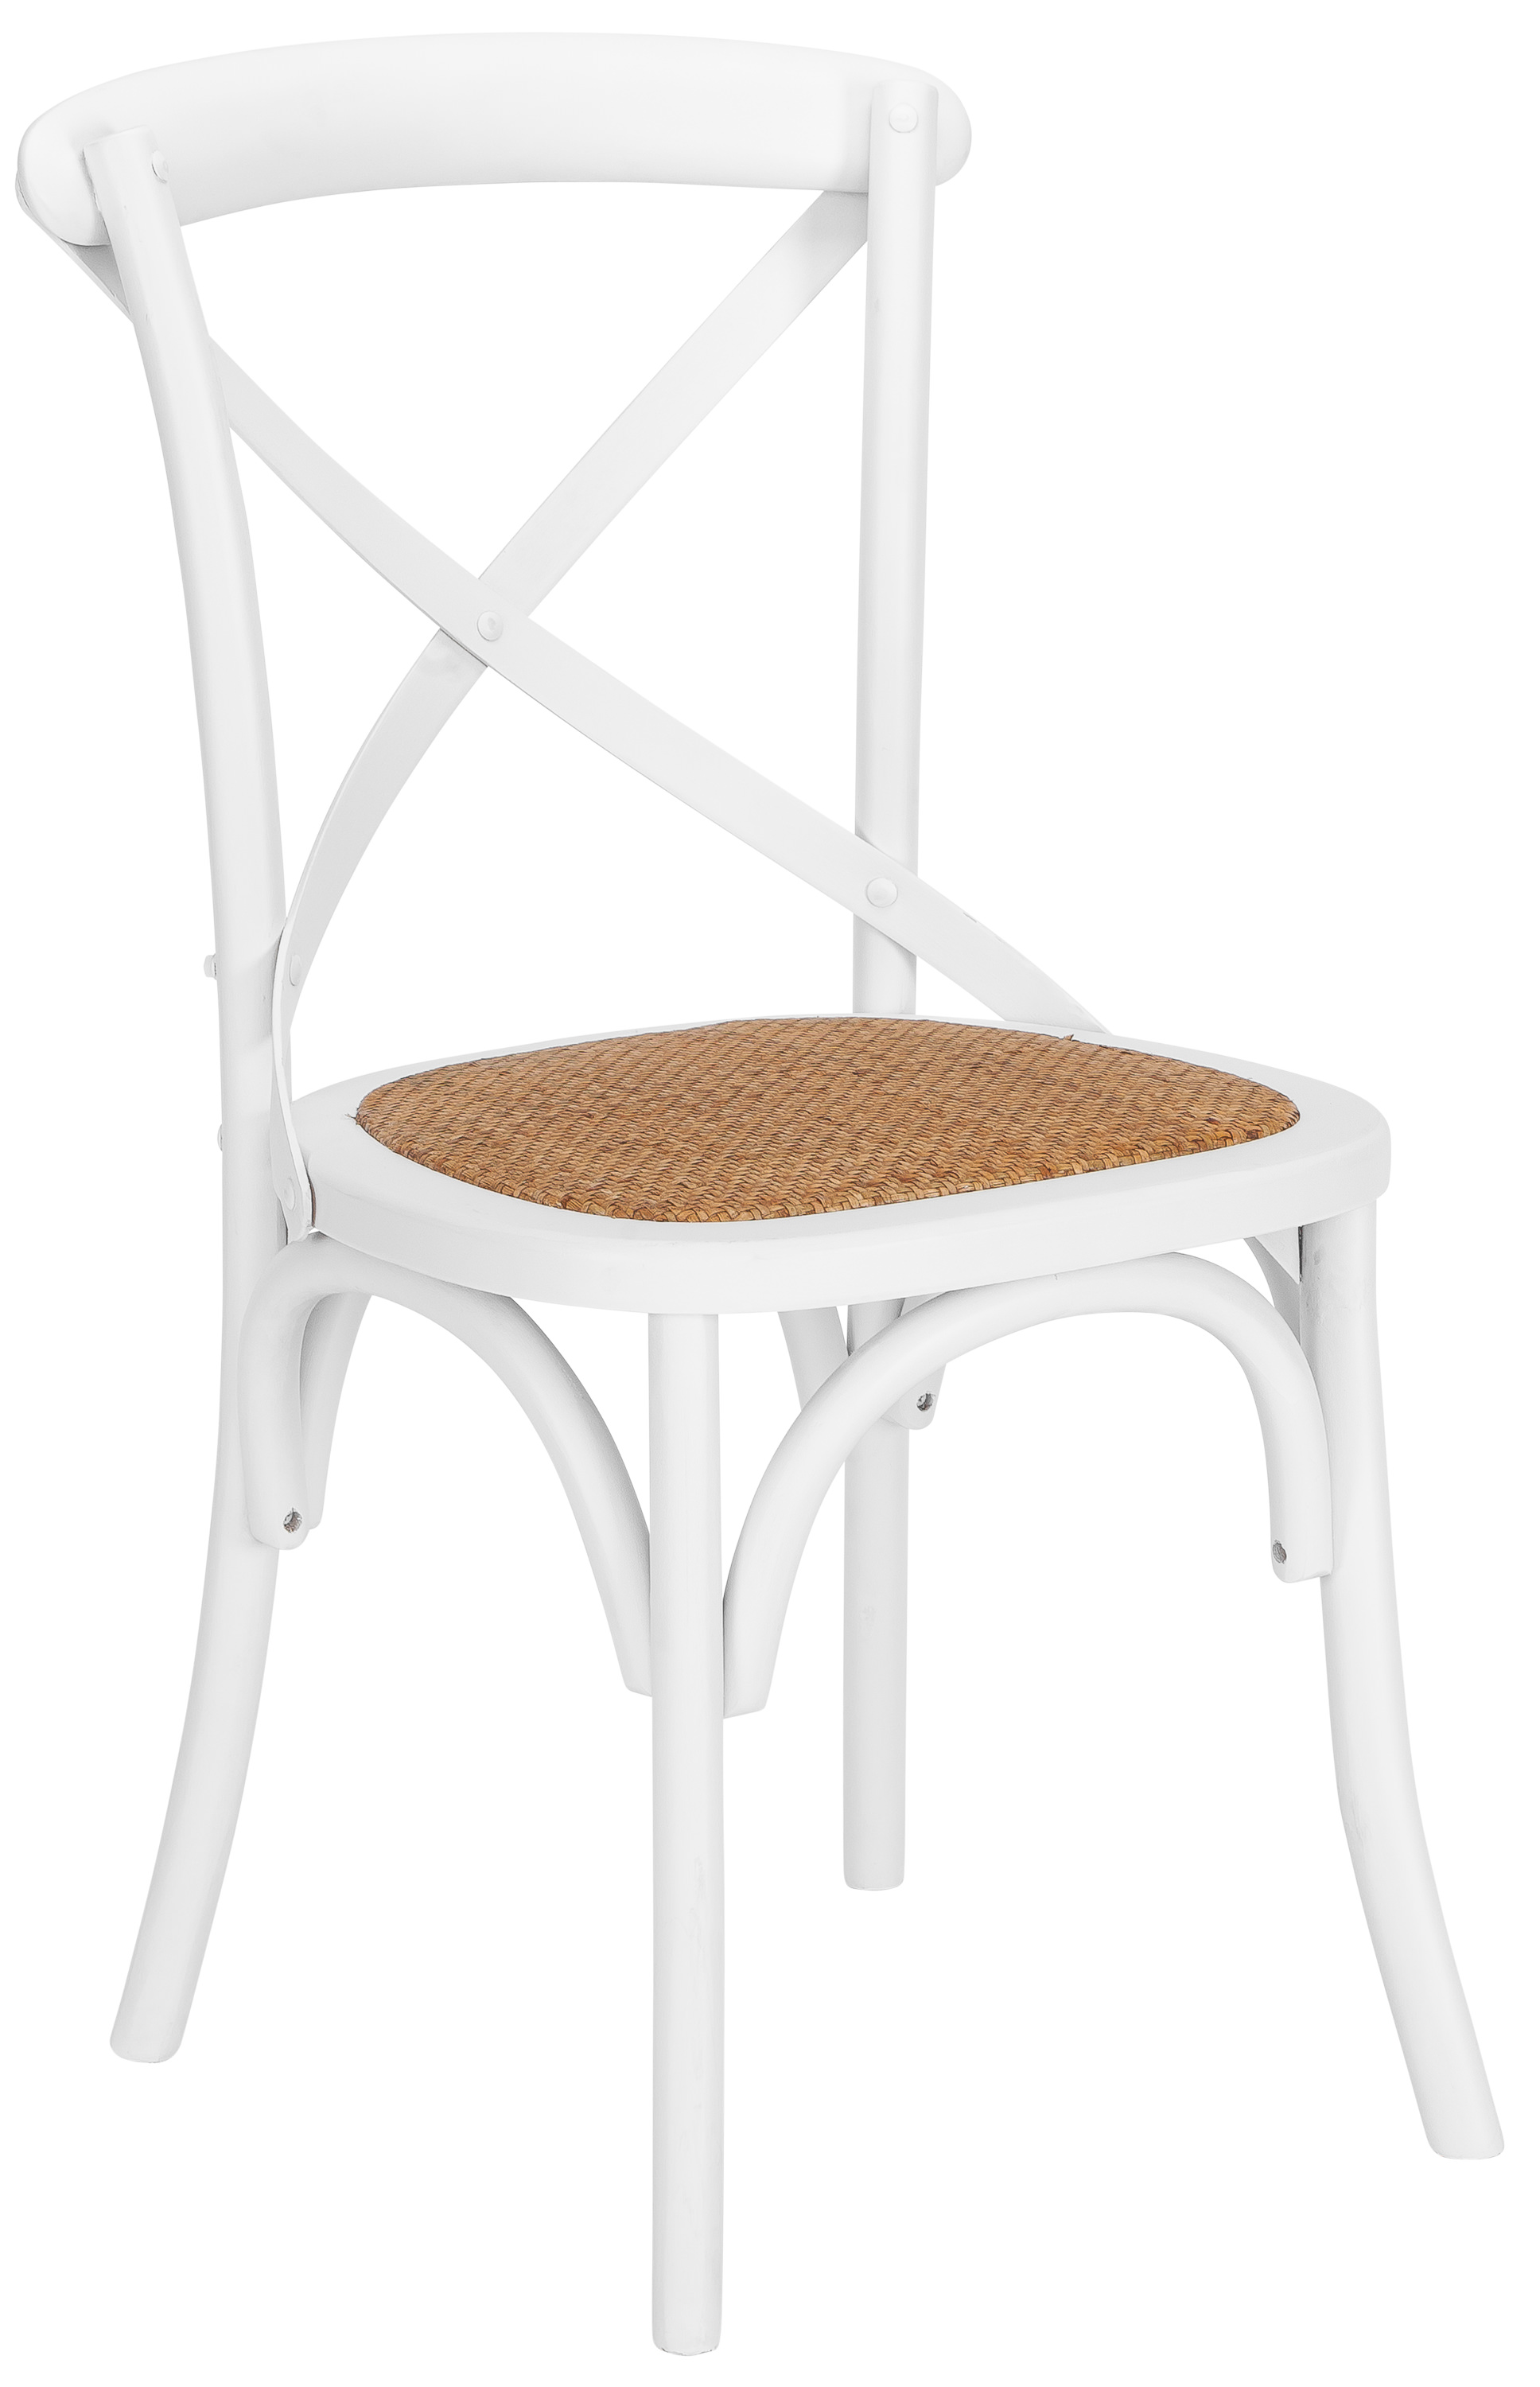 Poly And Bark Cafton Crossback Chair In White   Walmart.com